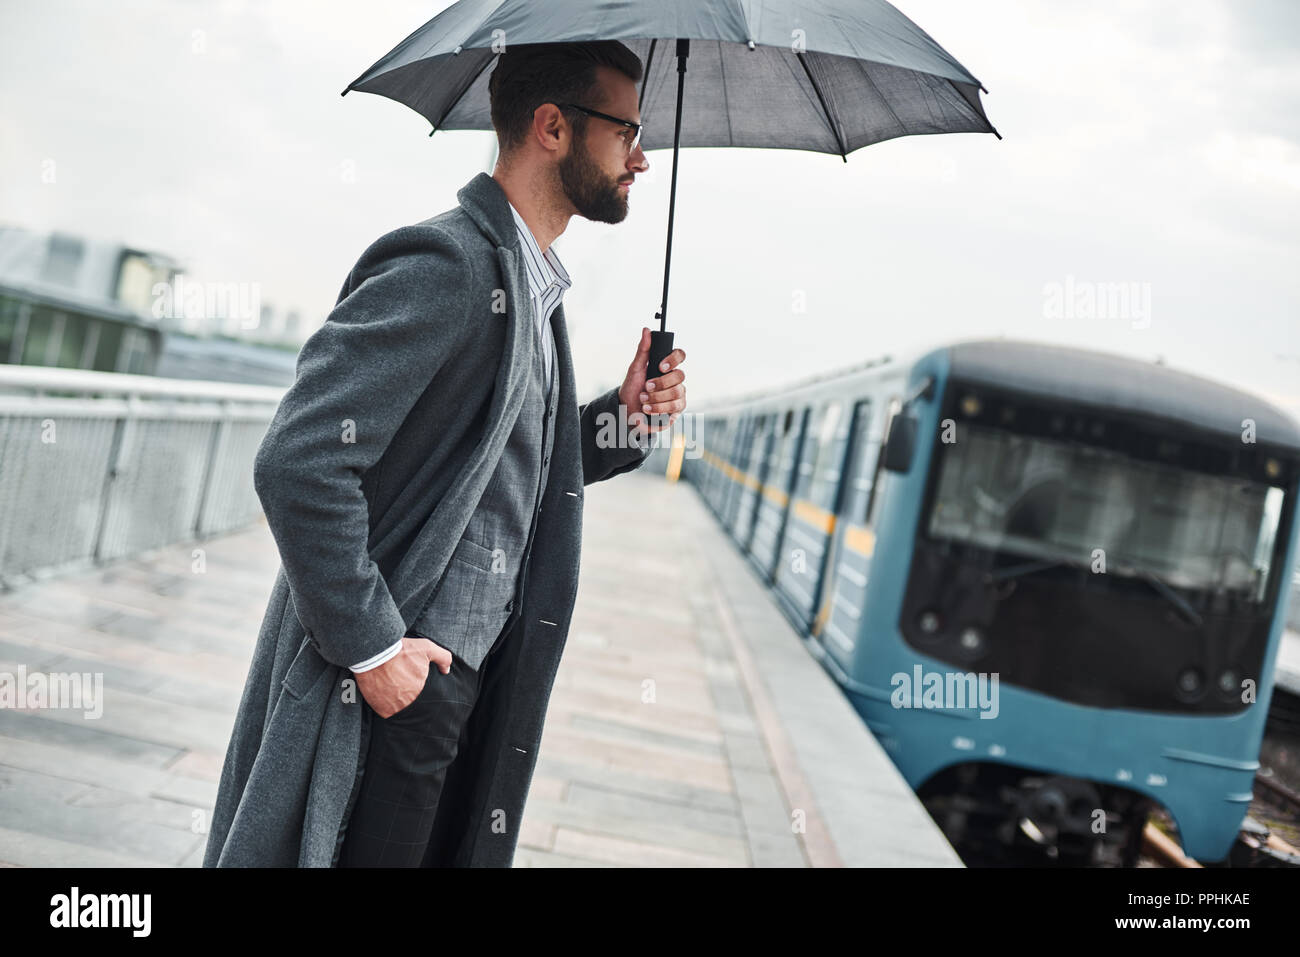 Waiting for train. Young businessman standing near railway under umbrella - Stock Image